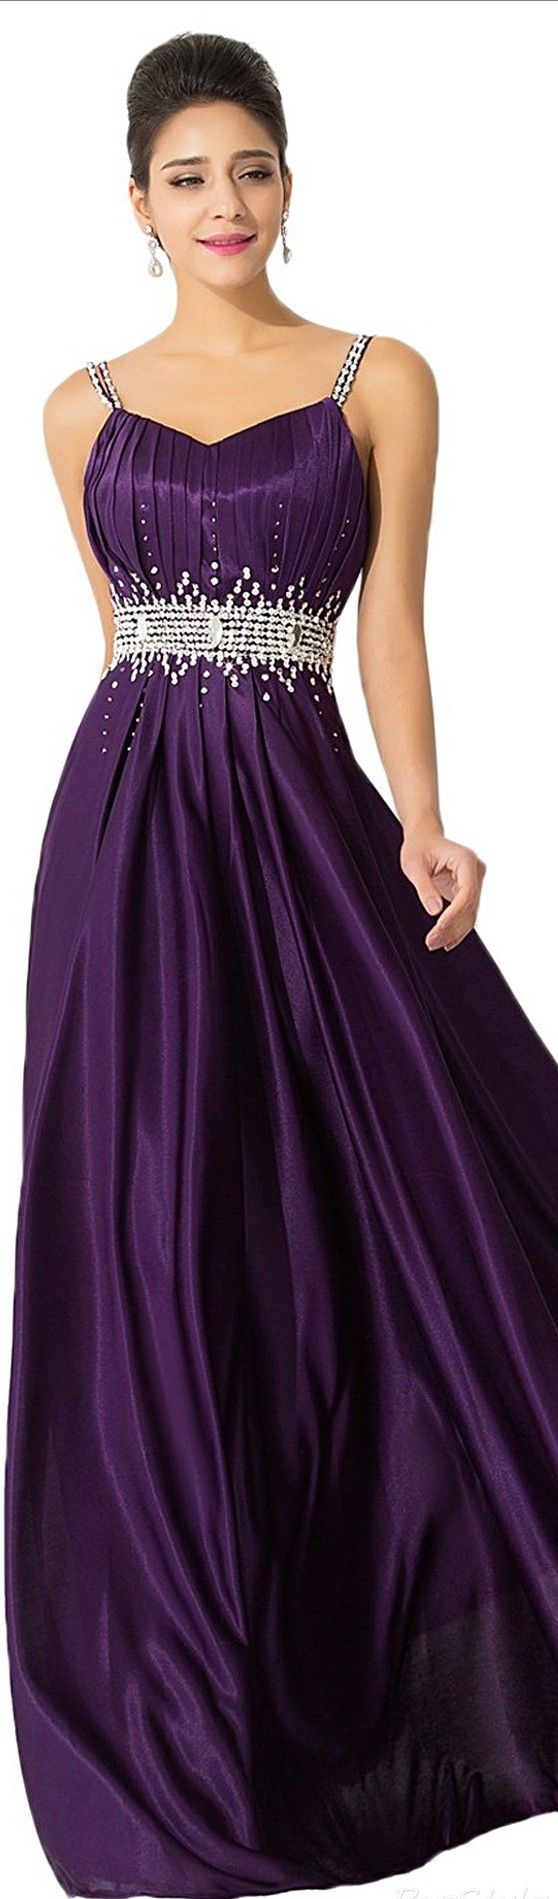 SUNVARY ¤ In Royal Purple Long Flowing Skirt w. Beaded Waist Bund w. Star at Stomach & Spaghetti Straps & Clean Halter Top of Formal Gown ¤  Suggested Price: $65.69 – $95.69USD ¤  Color: Purple (others may be available) ¤ See Dress Availability:(AMAZON).